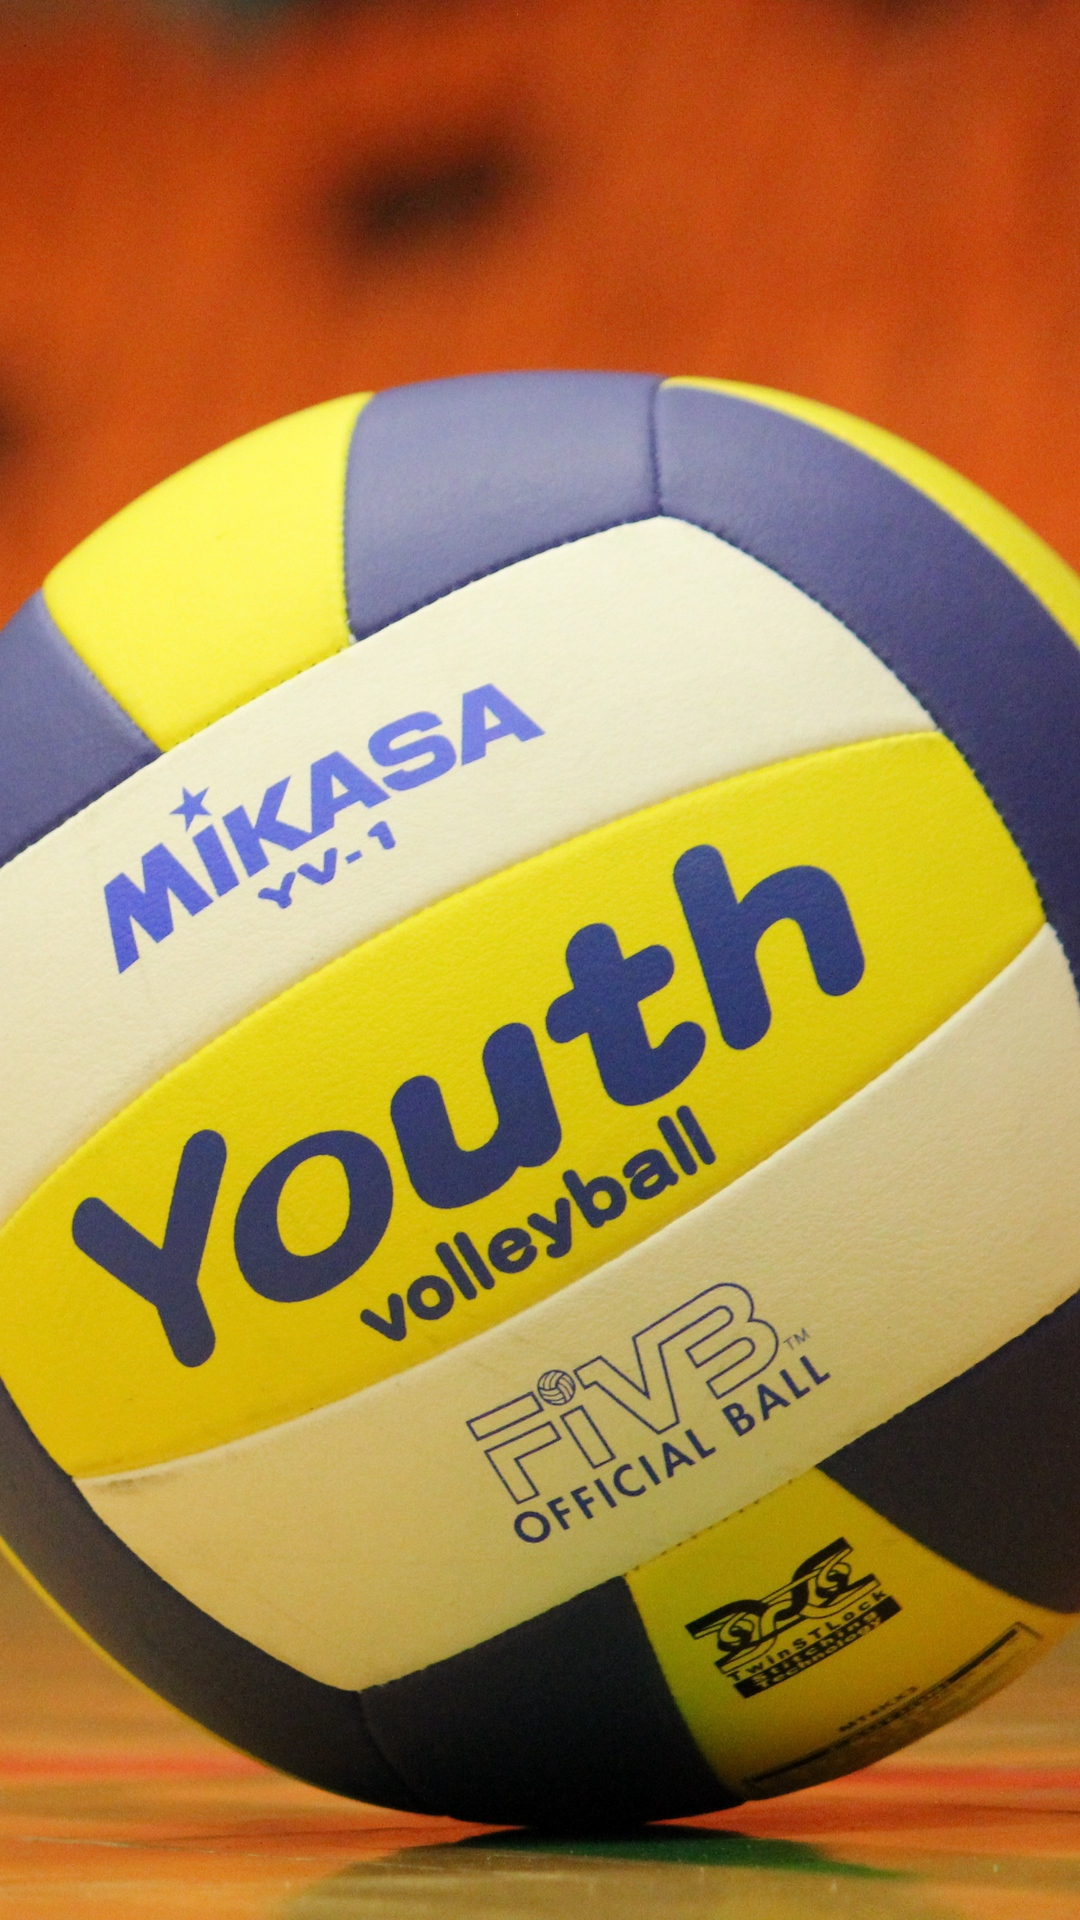 Wallpaper Volleyball Balls, Volleyball, Sports - Volleyball Images Download Hd - HD Wallpaper